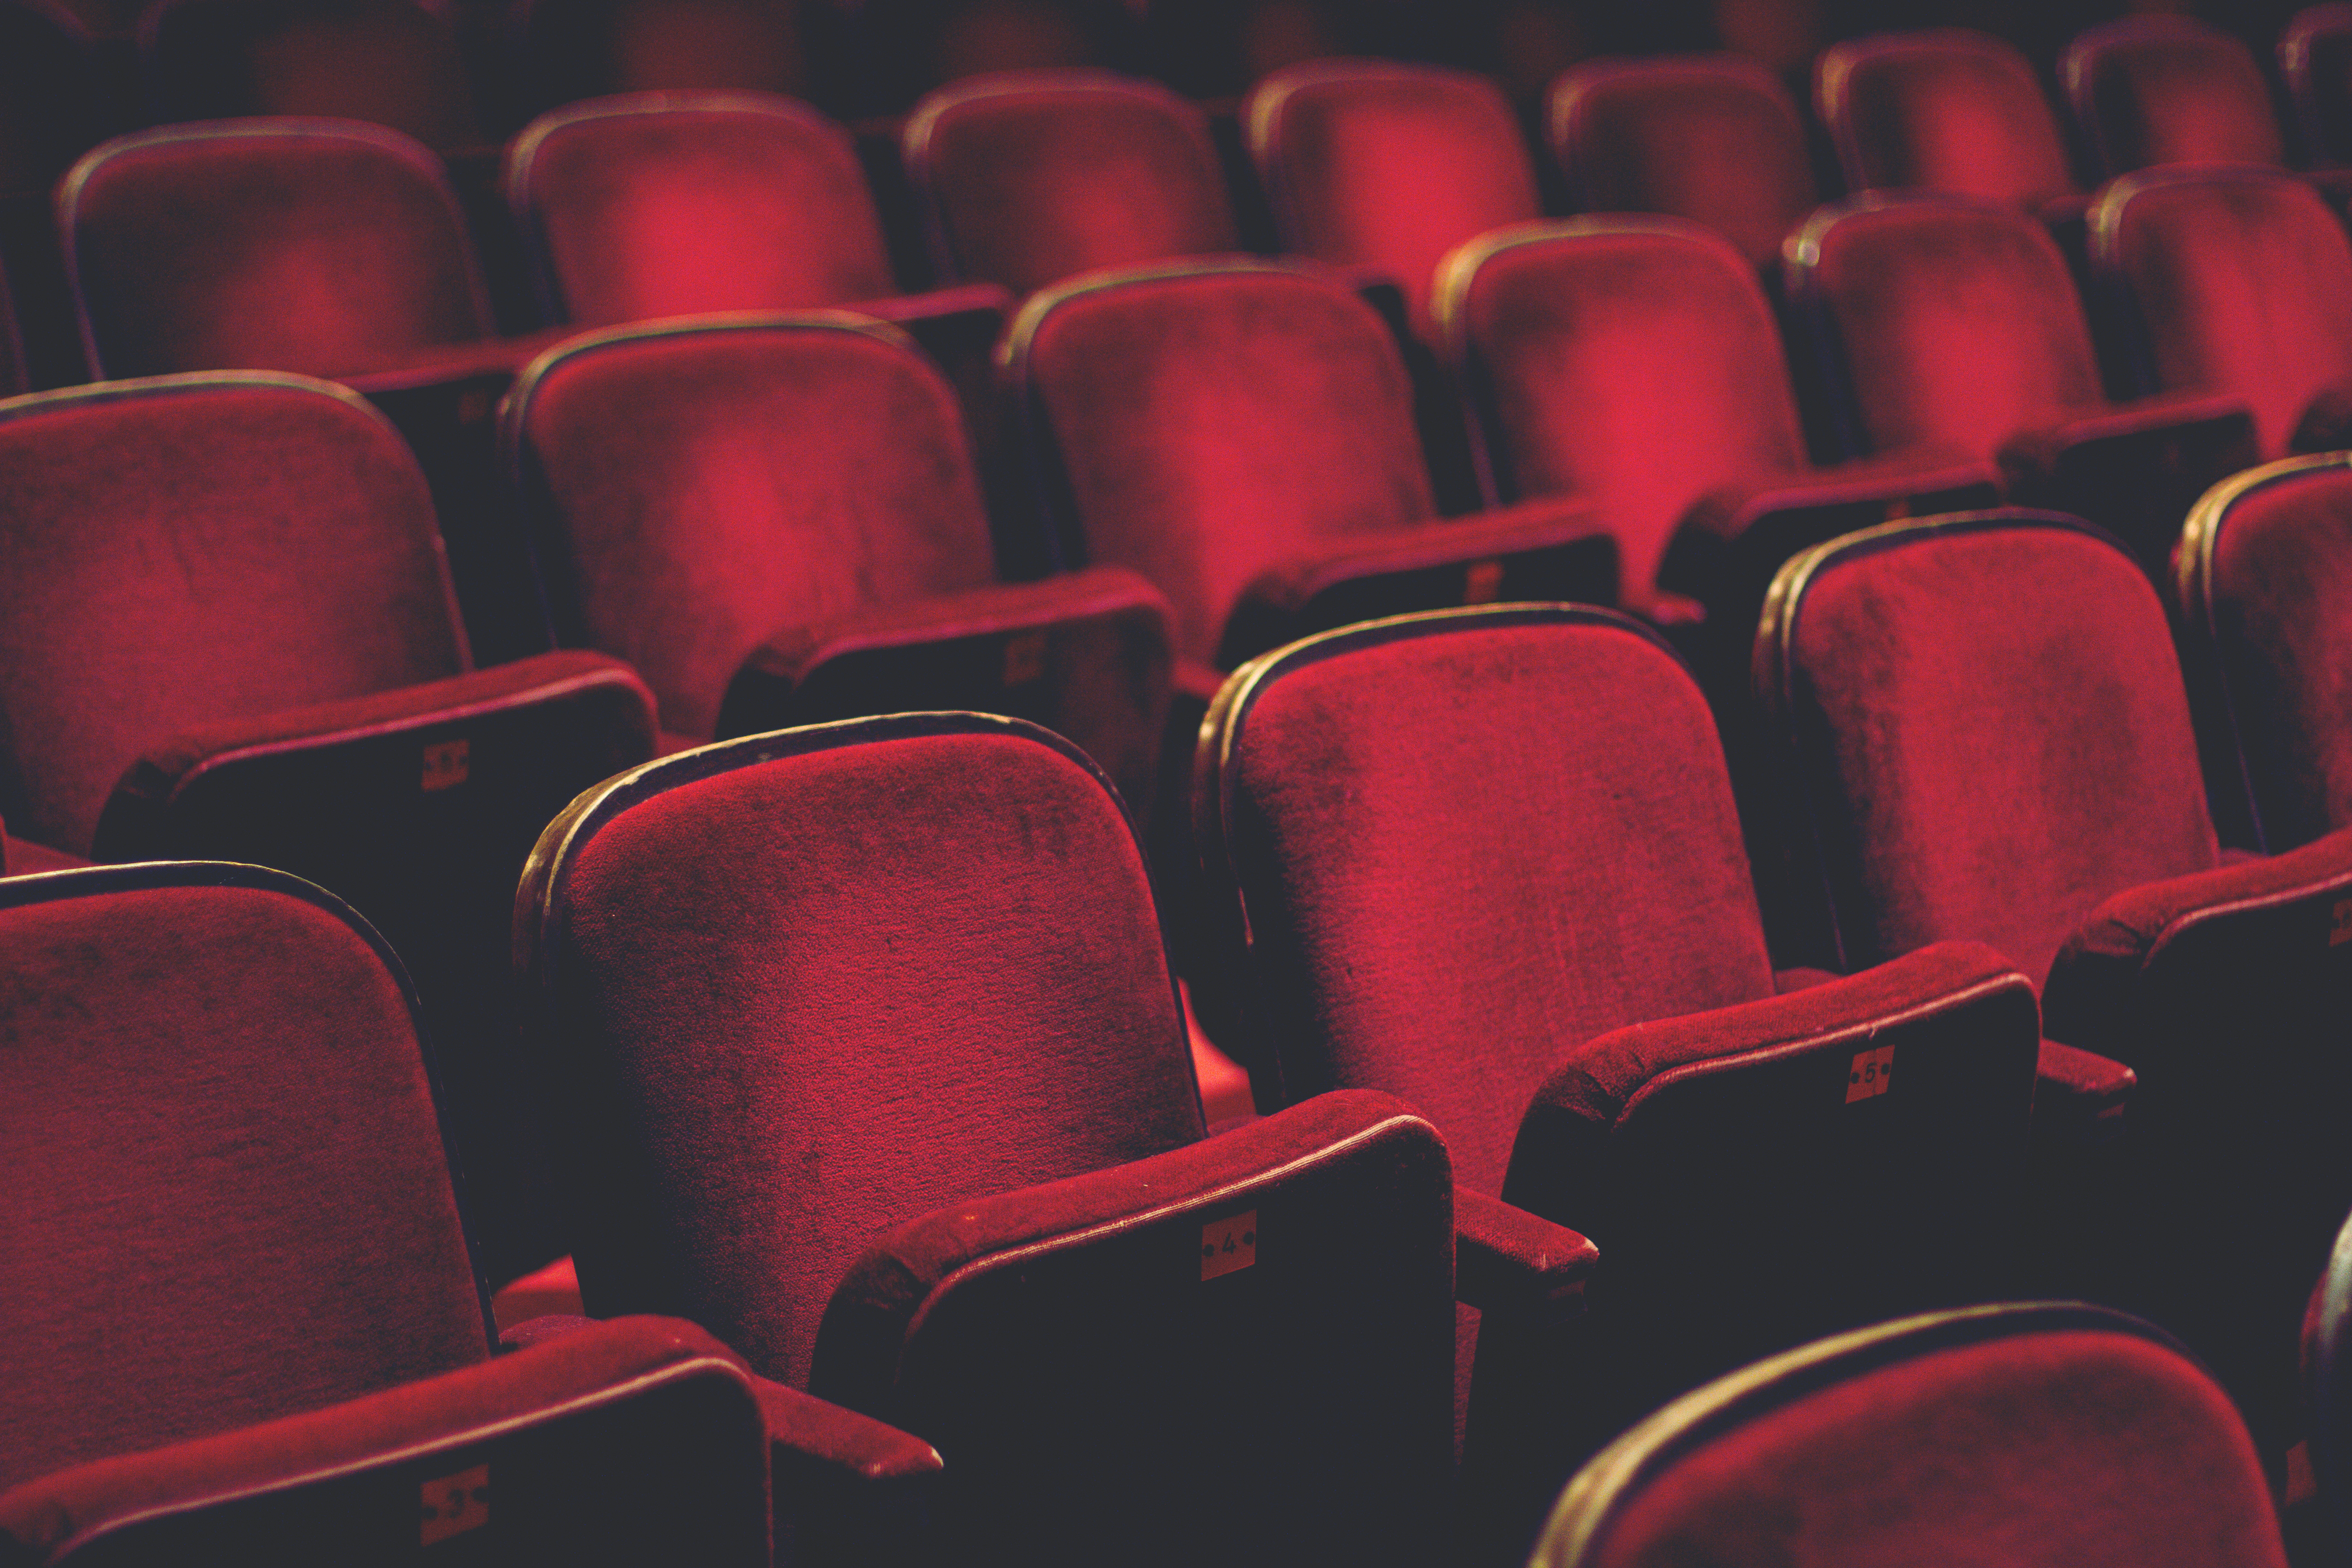 Glasgow Film Theatre has been awarded £100,000 and will offer monthly 'Movie Memories' film screenings at its cinema (iStock)